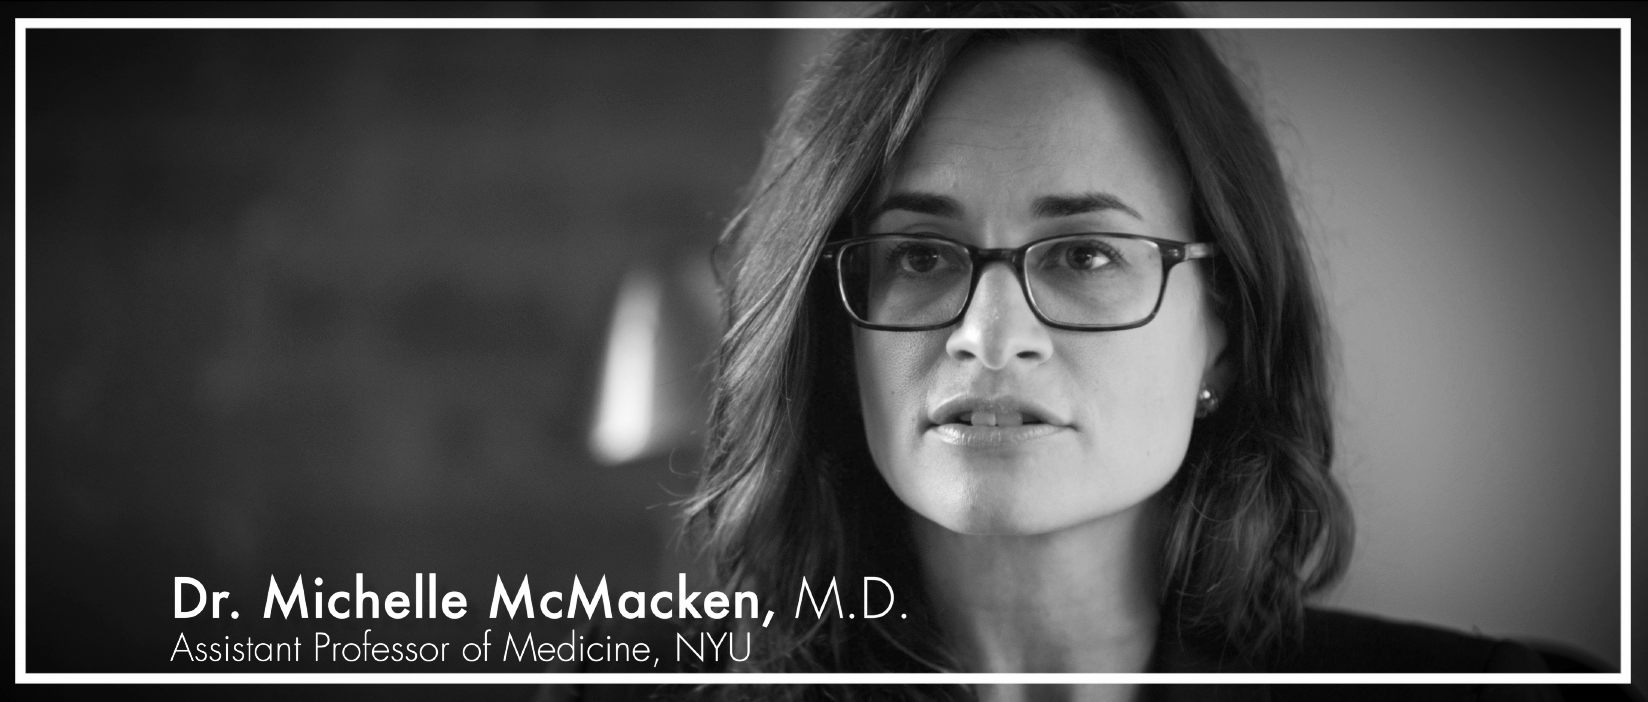 Dr. Michelle McMacken  is a board-certified internal medicine physician and an assistant professor of medicine at NYU School of Medicine. An honors graduate of Yale University and Columbia University College of Physicians and Surgeons, she has more than ten years of experience practicing primary care, directing a medical weight-loss program, and teaching doctors at Bellevue Hospital Center in NYC.